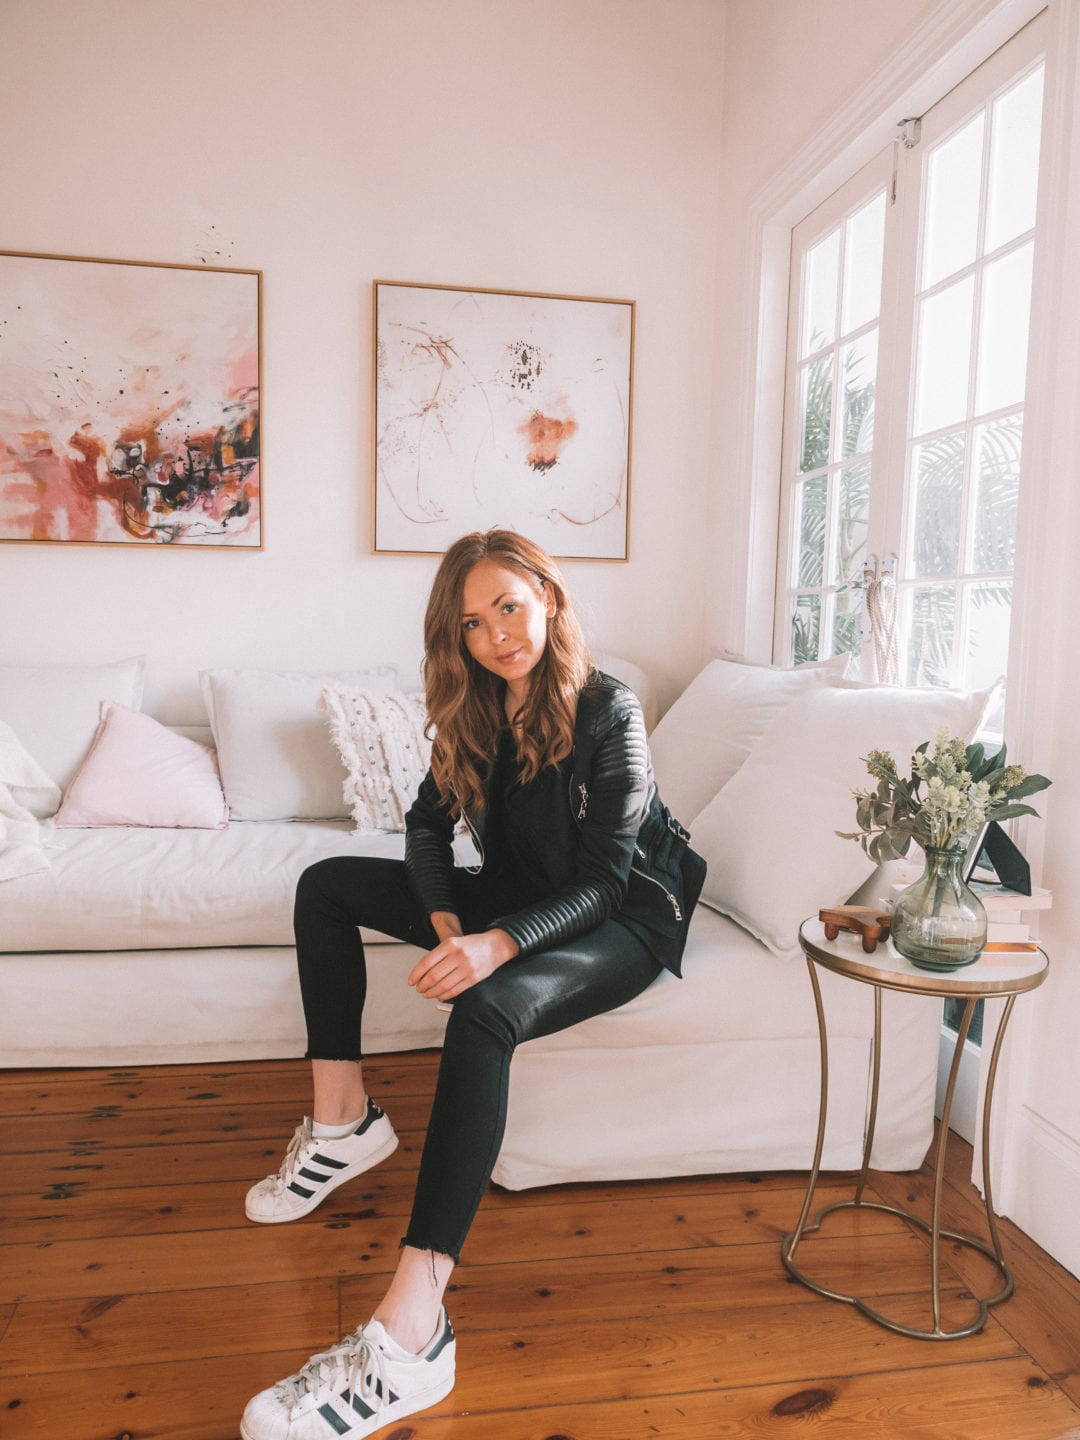 Inside the apartment of a Travel Blogger | Apartment Tour with World of Wanderlust